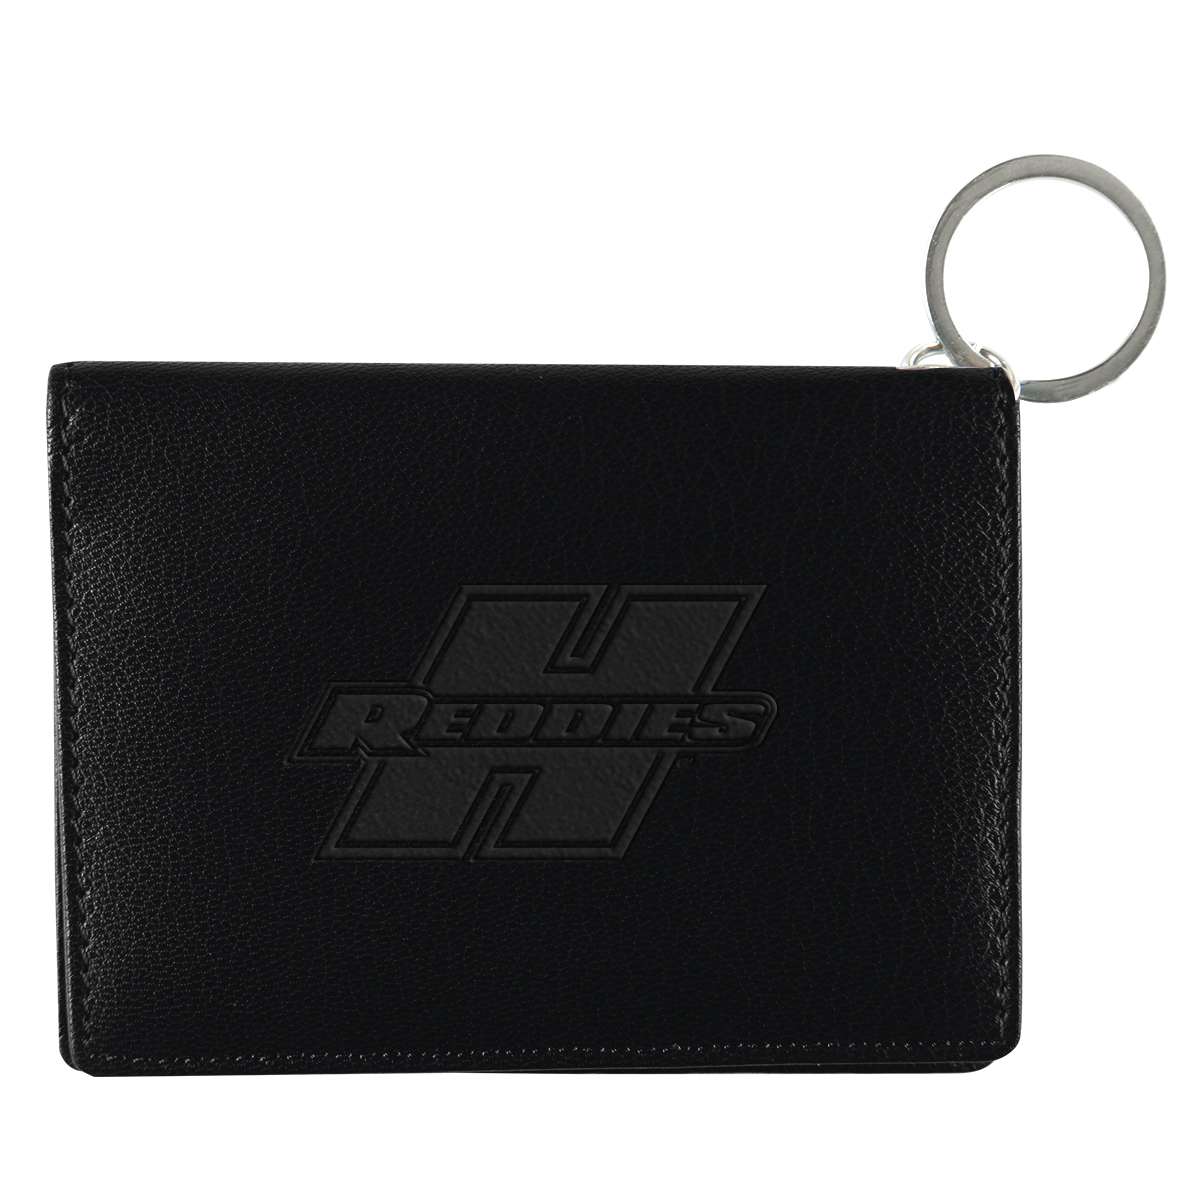 Reddies Nappa Leather ID Holder - Velcro